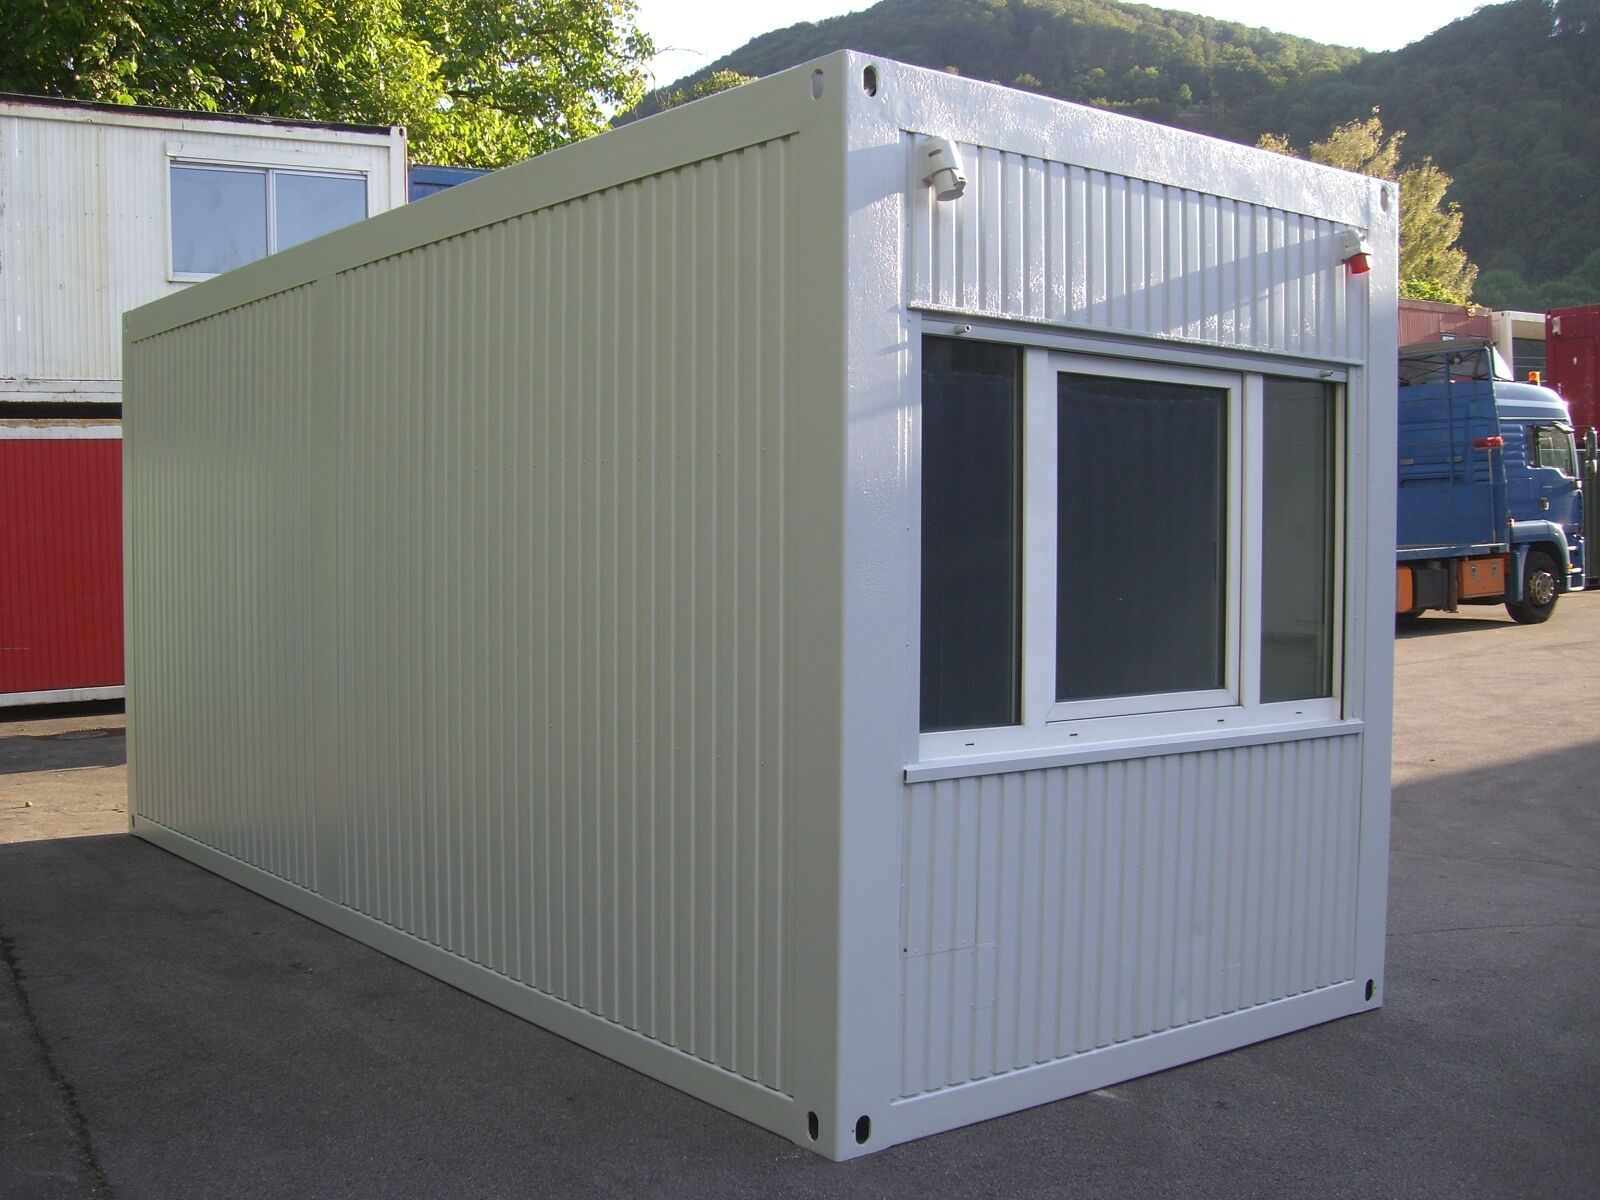 b rocontainer mietcontainer 6m x 2 5m wohncontainer. Black Bedroom Furniture Sets. Home Design Ideas